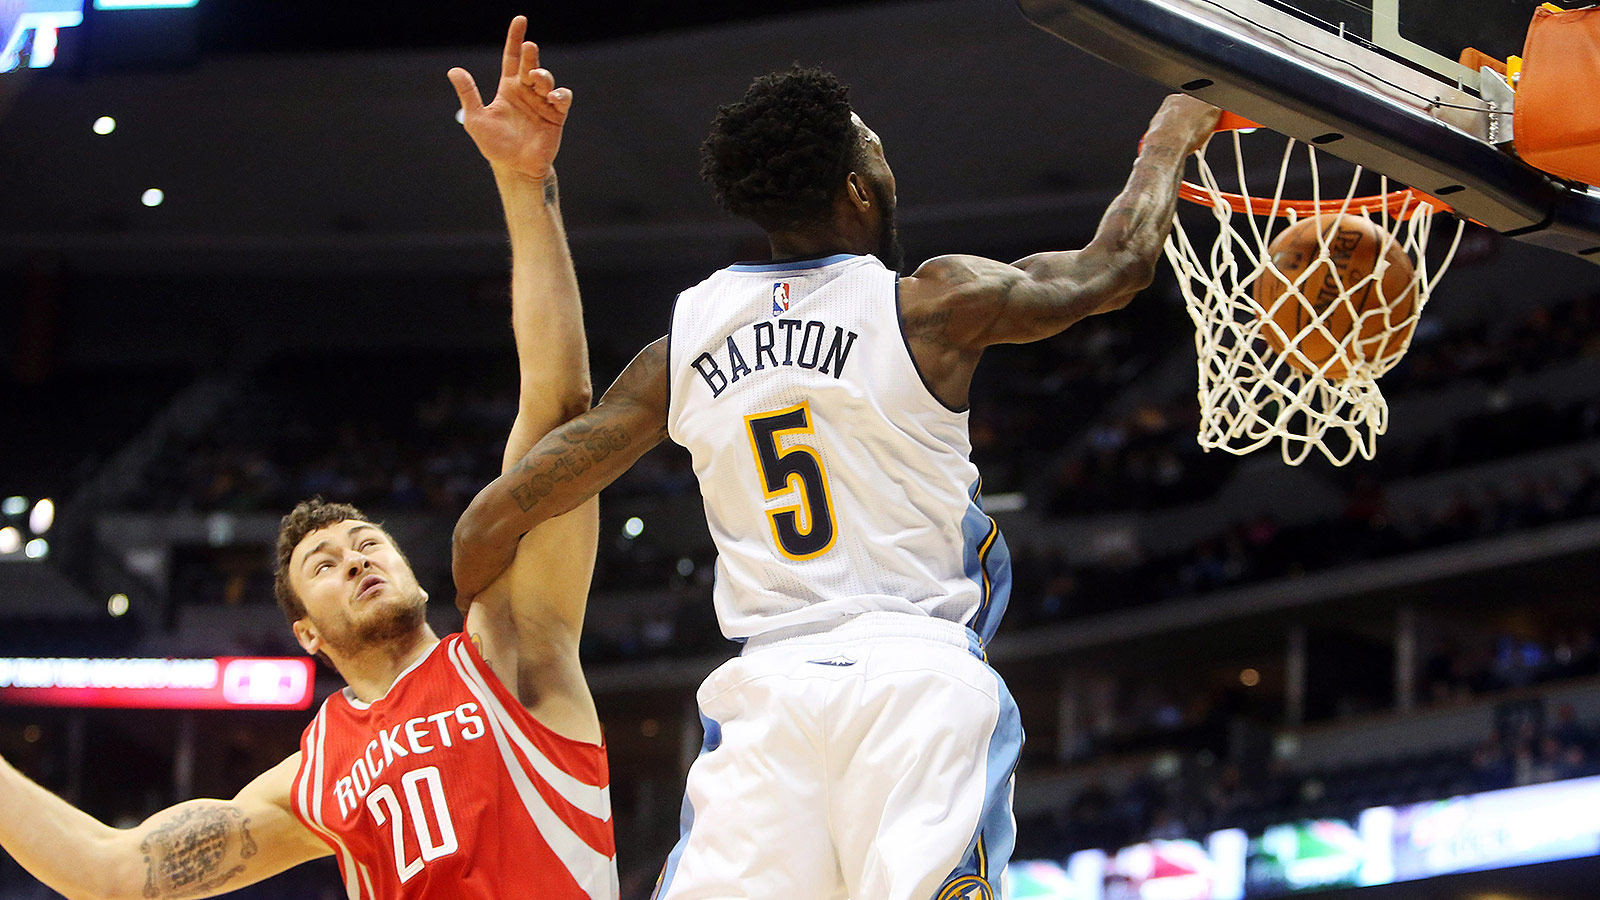 Barton nearly blows game, highlight jam with shoe-tossing tech